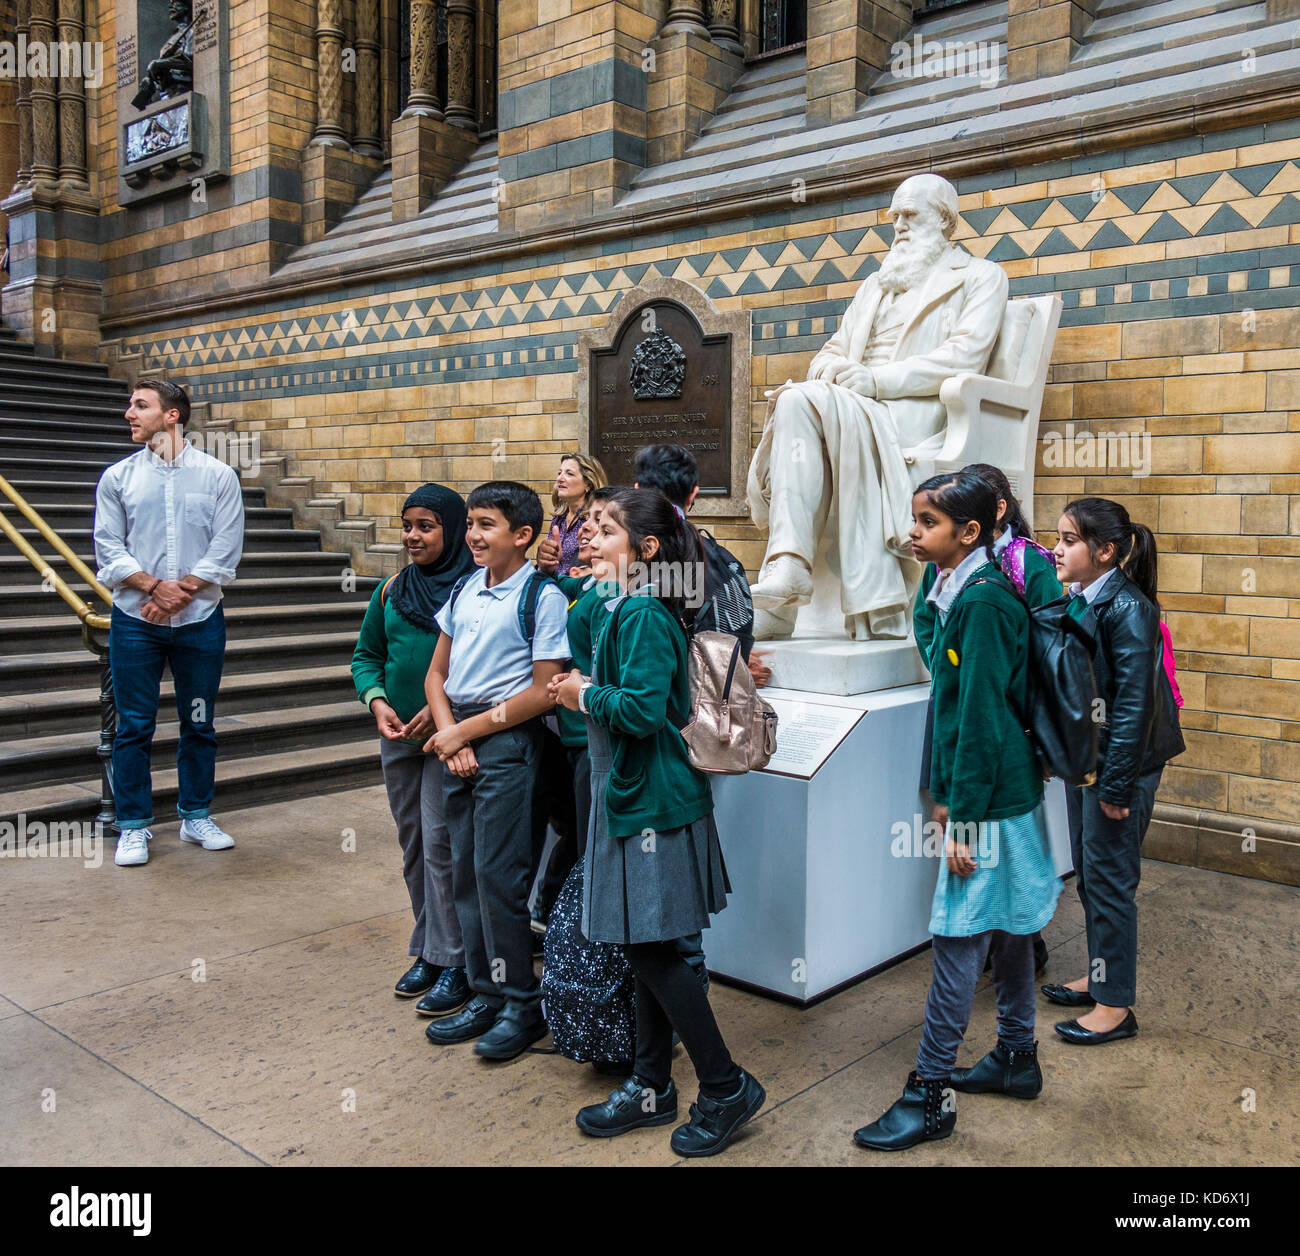 Schoolchildren on a school trip, posing for a photograph in front of the Charles Darwin statue, at the Natural History - Stock Image